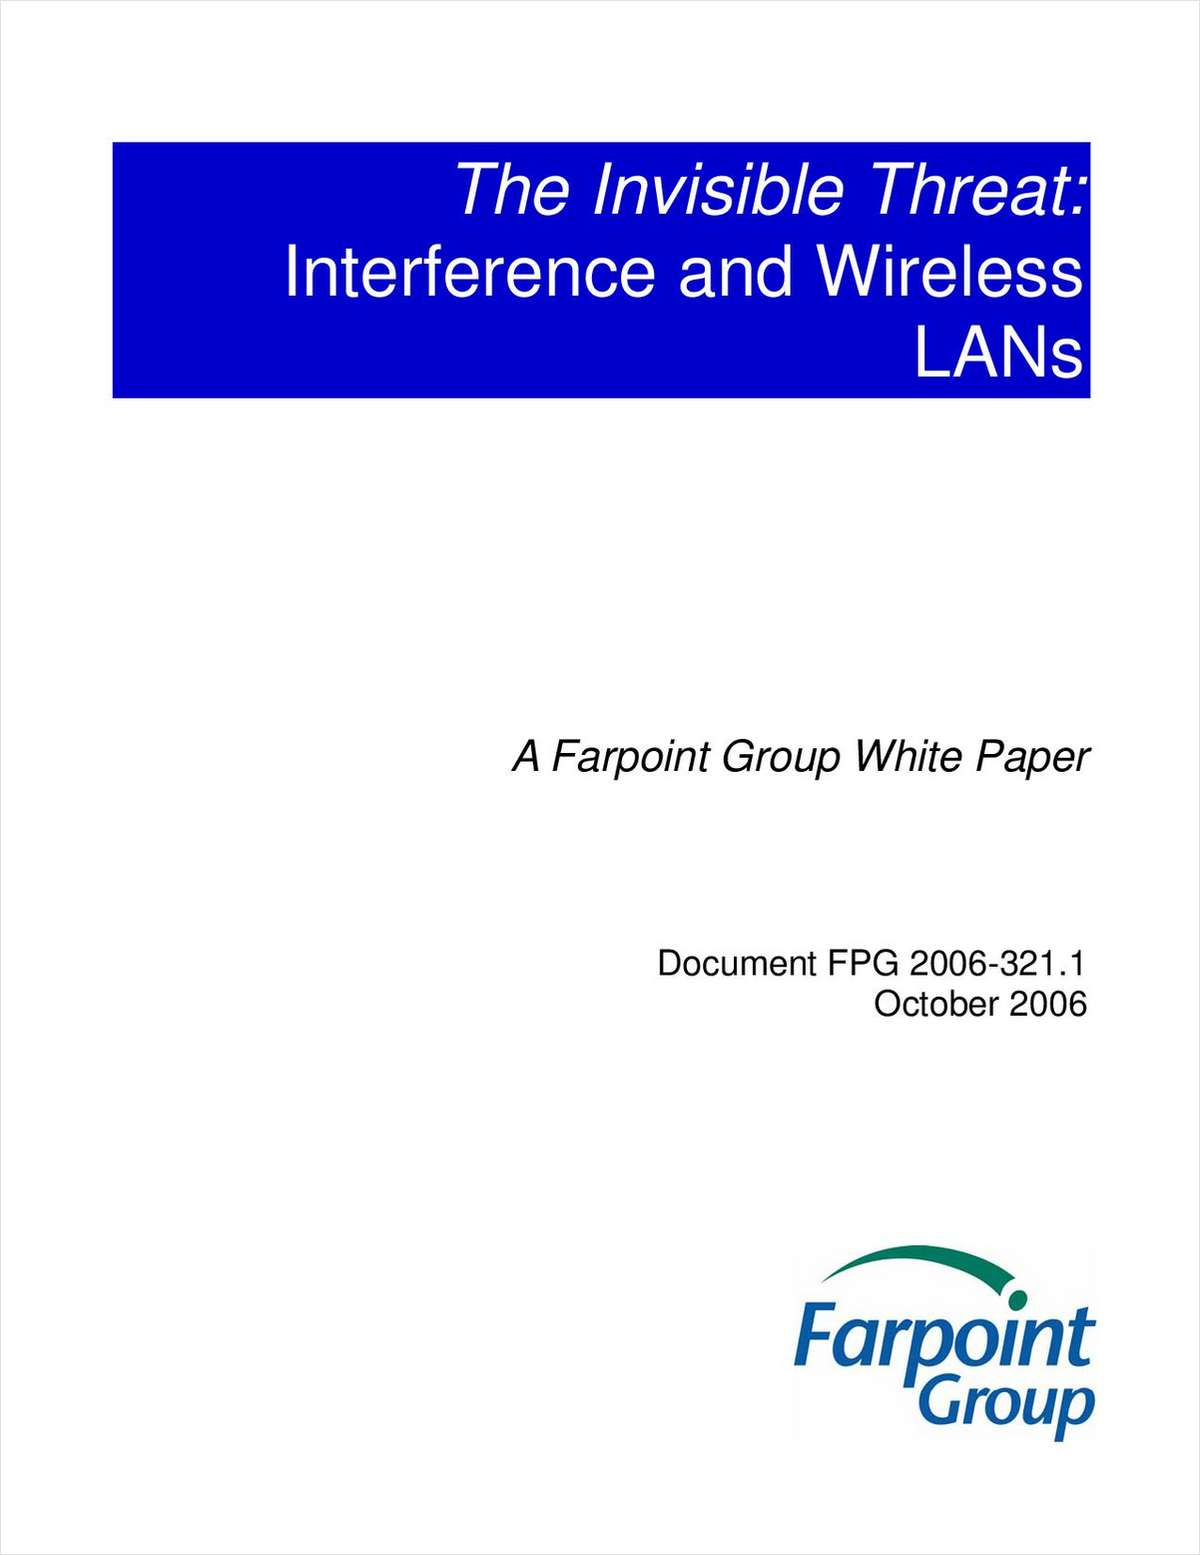 The Invisible Threat: Interference and Wireless LANs